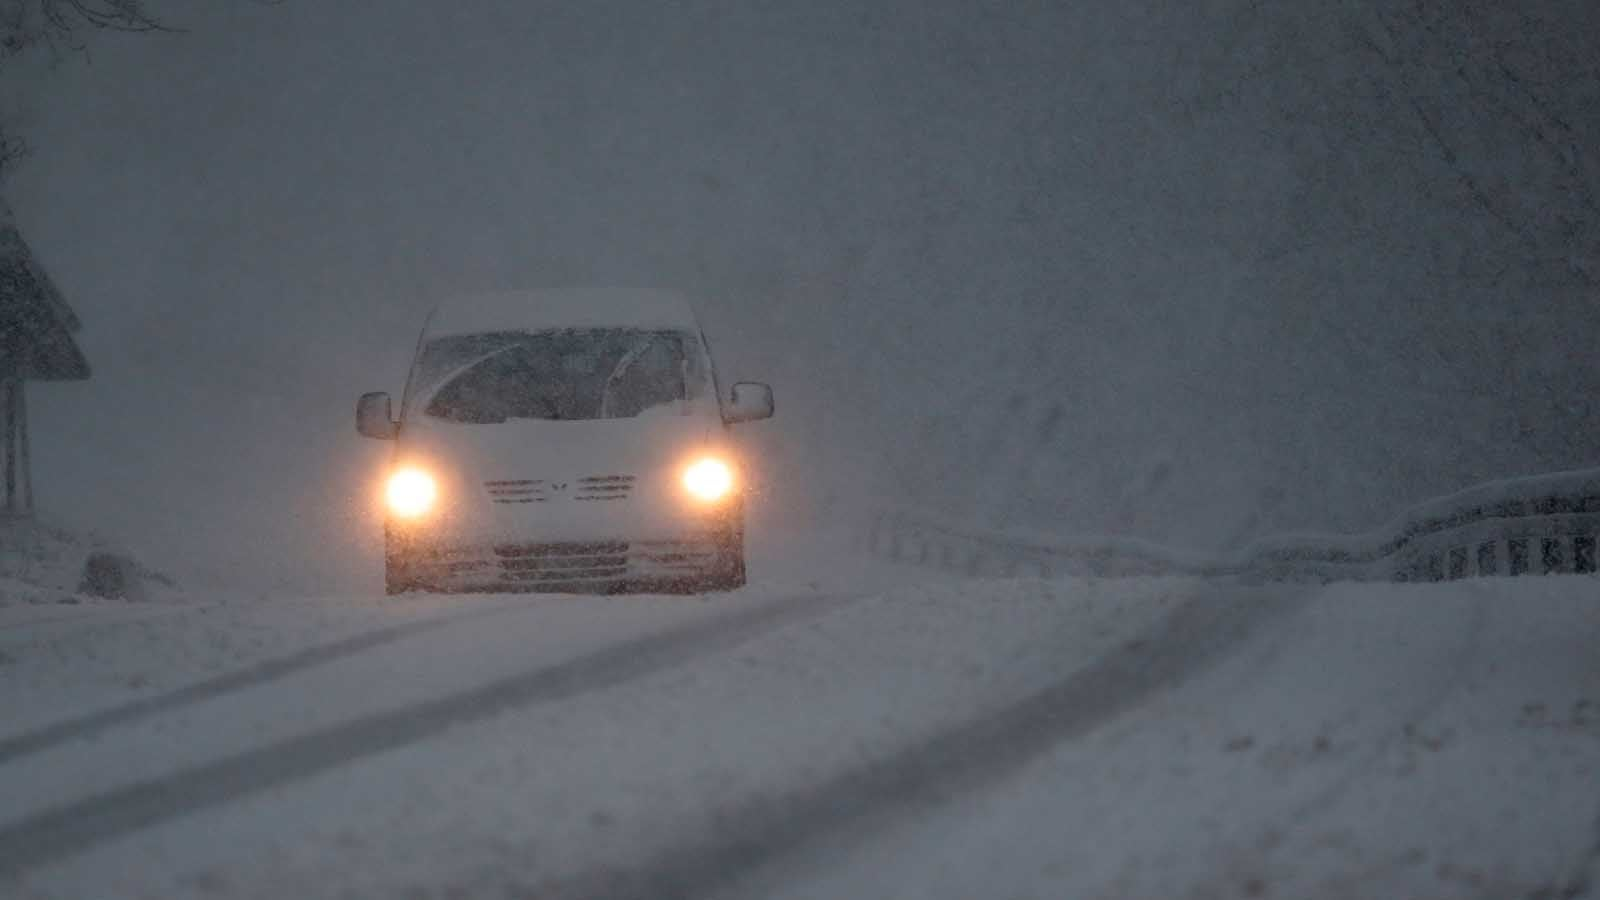 A car drives through a snow storm on a road near Sarajevo, Bosnia, Monday, Feb. 11, 2019. Heavy snow descended on the Balkan countries causing havoc throughout the region. (AP Photo/Amel Emric)